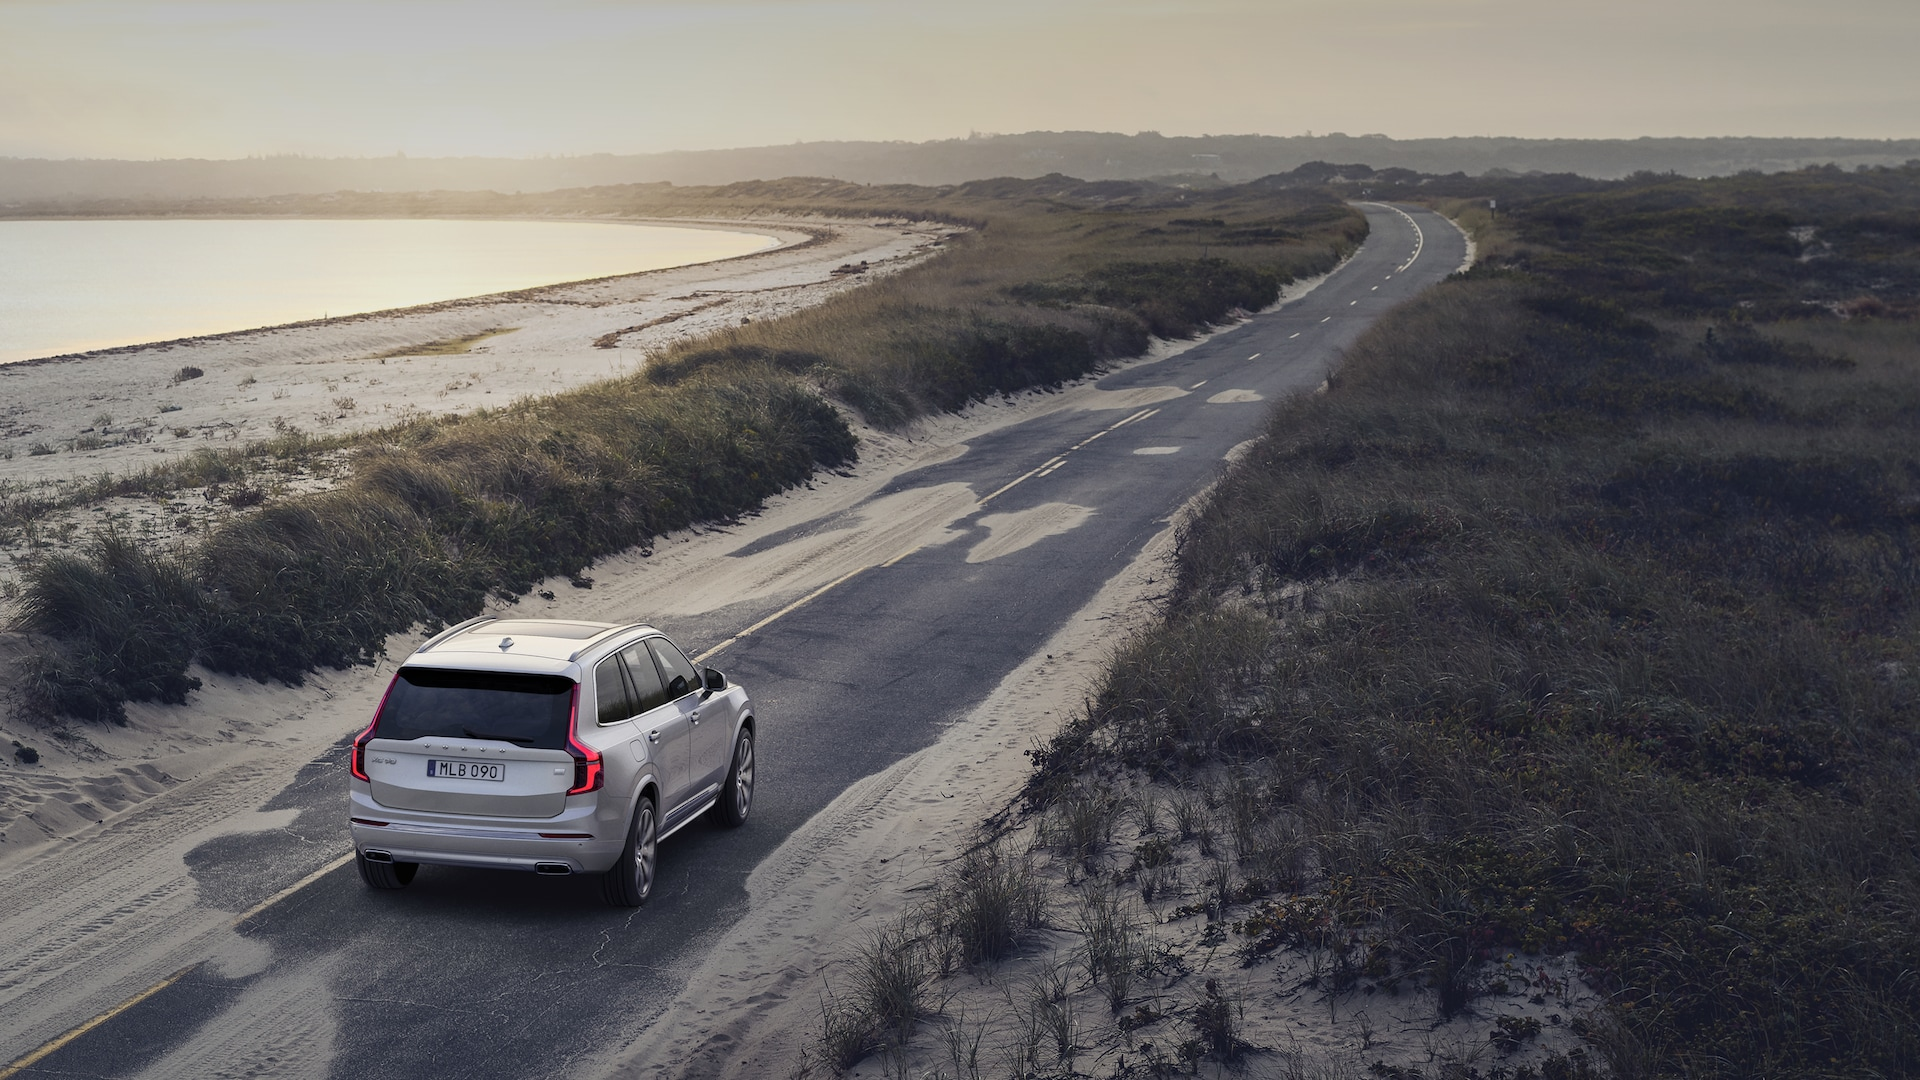 XC90 driving on a beach road at sunset